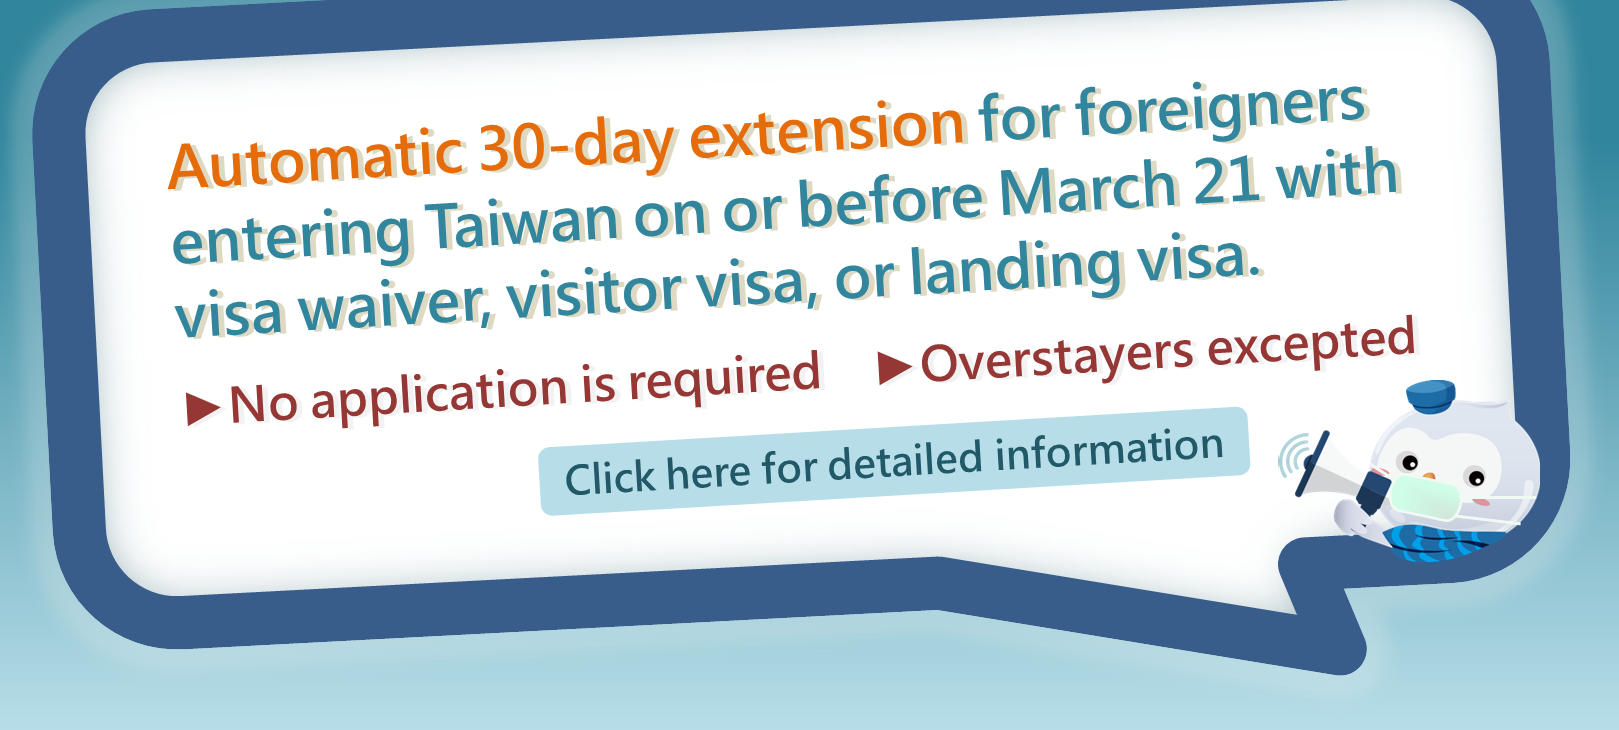 Automatic 30-day visa extension